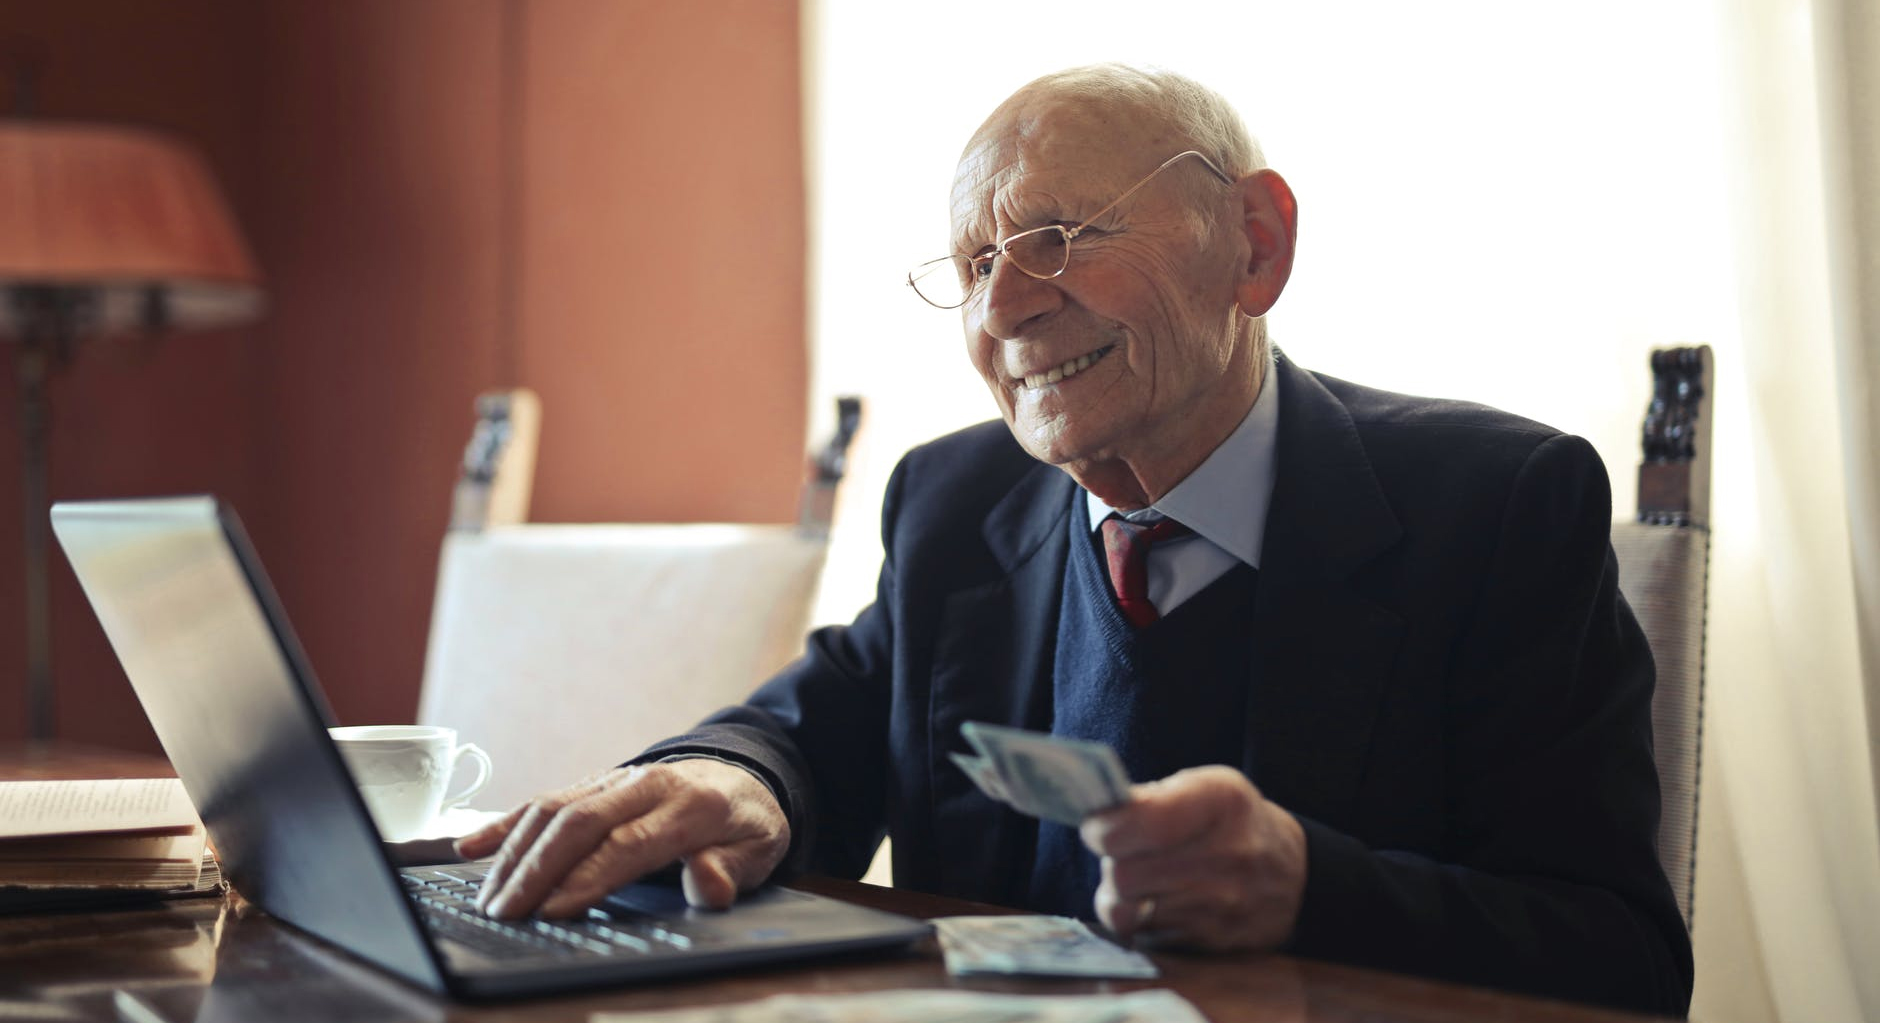 An elderly many at a laptop holding cash in his hand